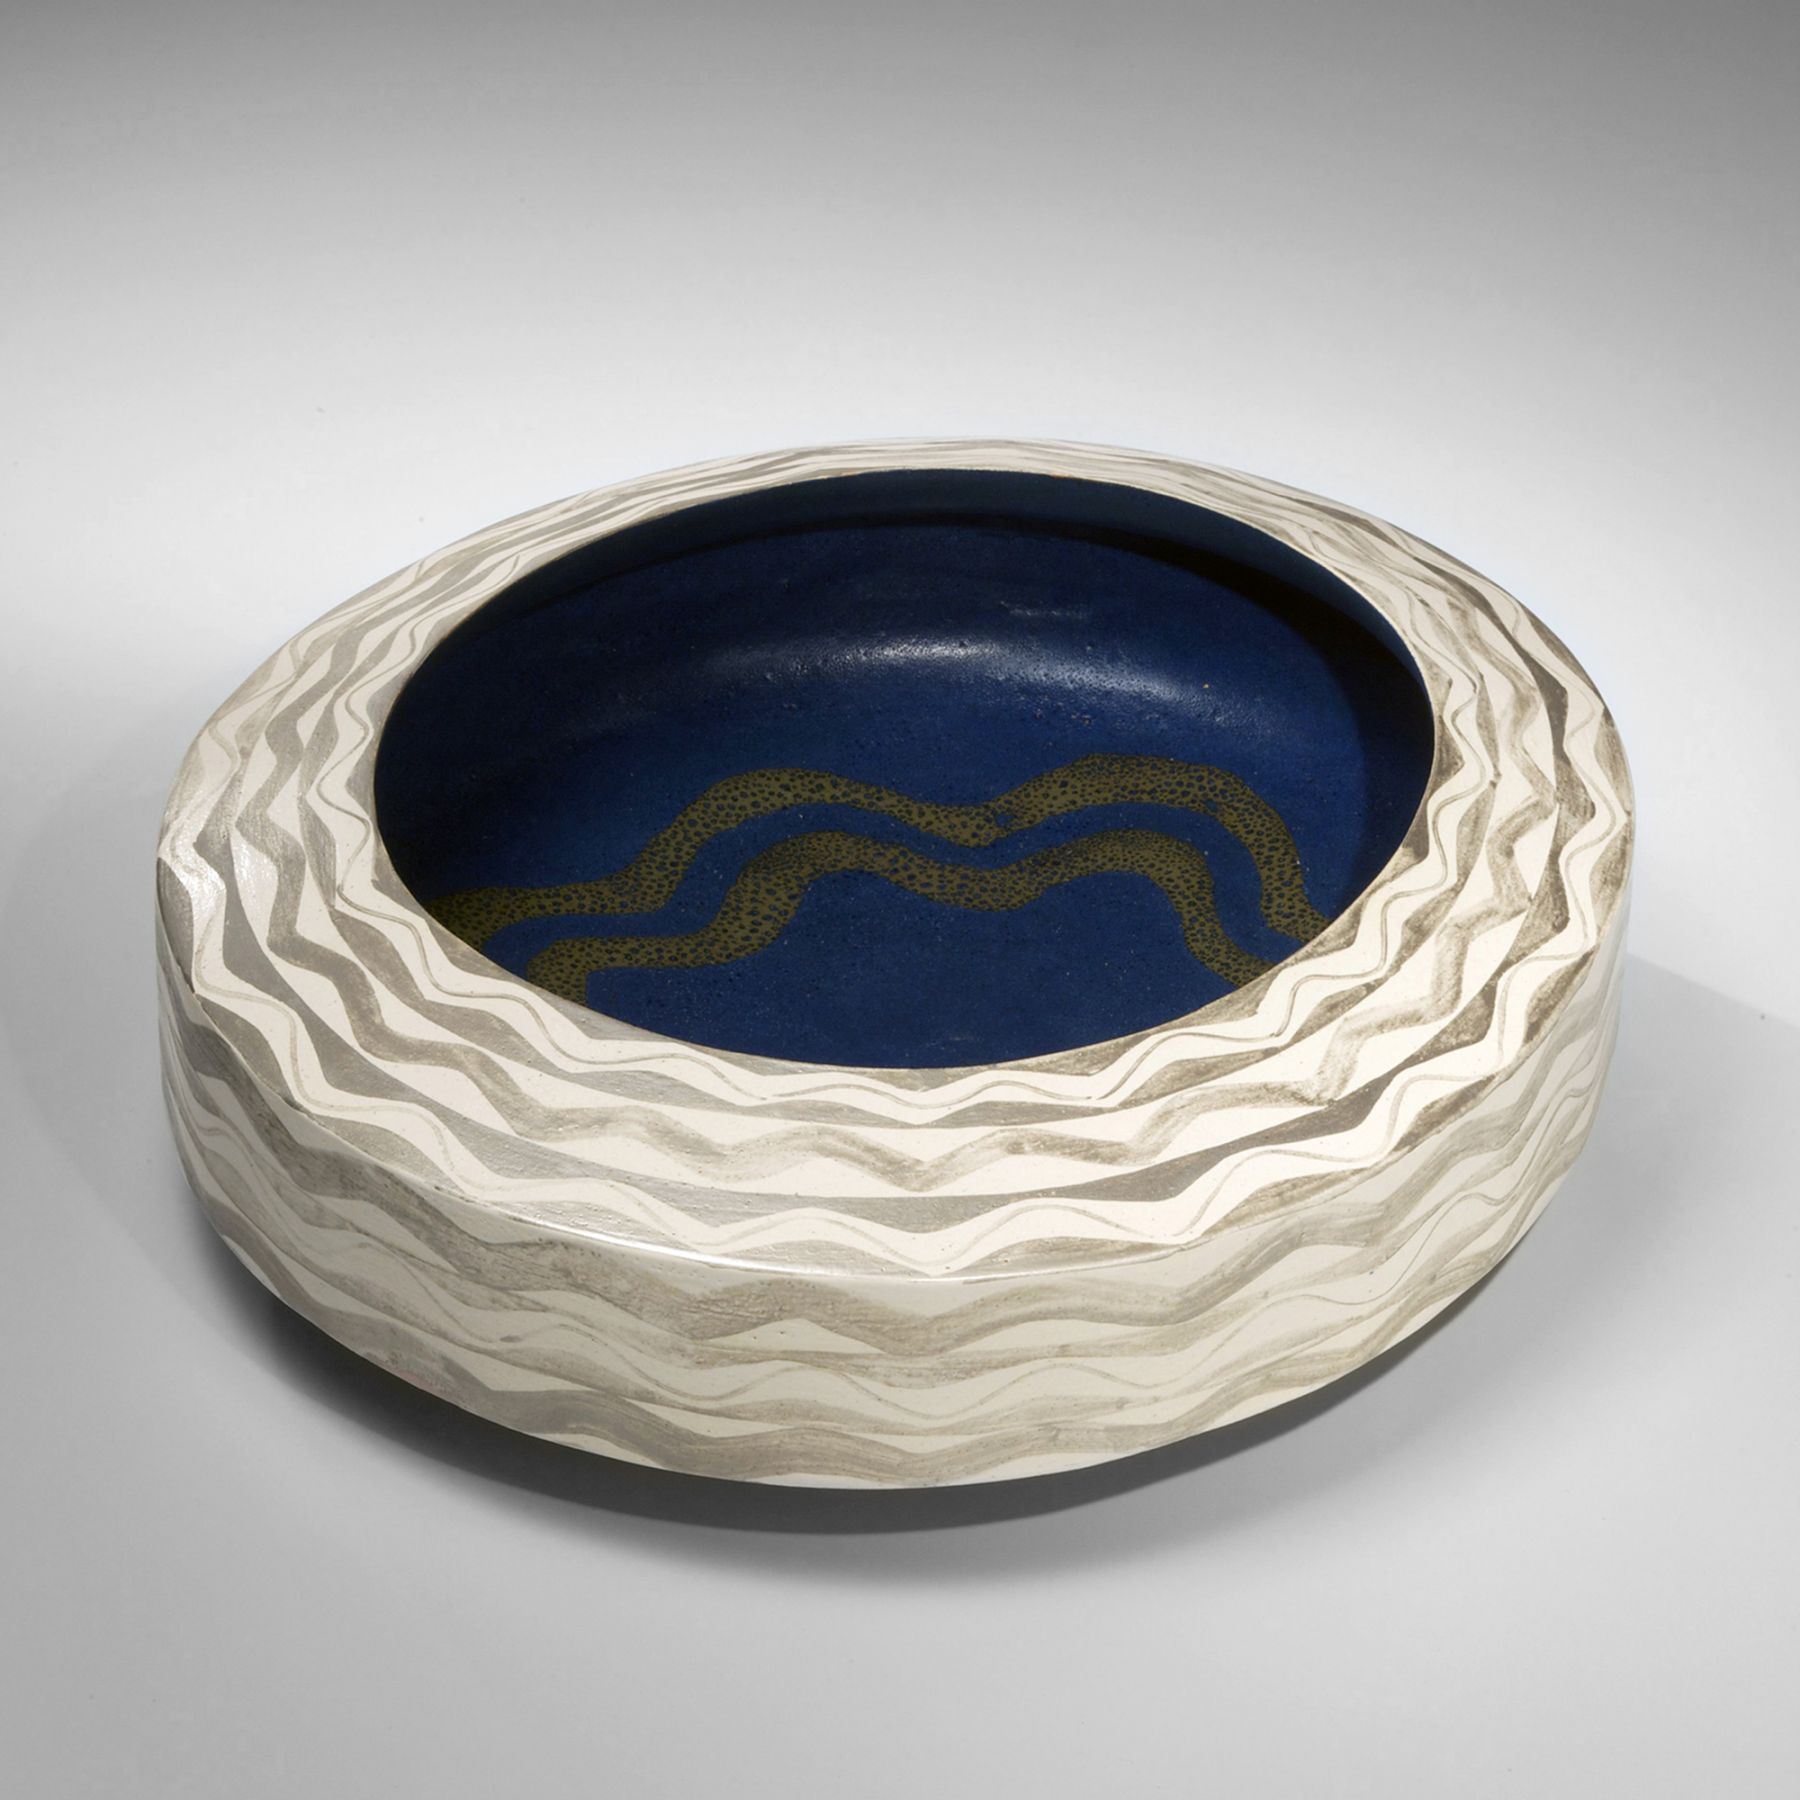 Morino Hiroaki Taimei (b.1934), Low, ovoid bowl with wave-patterned silver glaze and white, blue and gold glazed interior